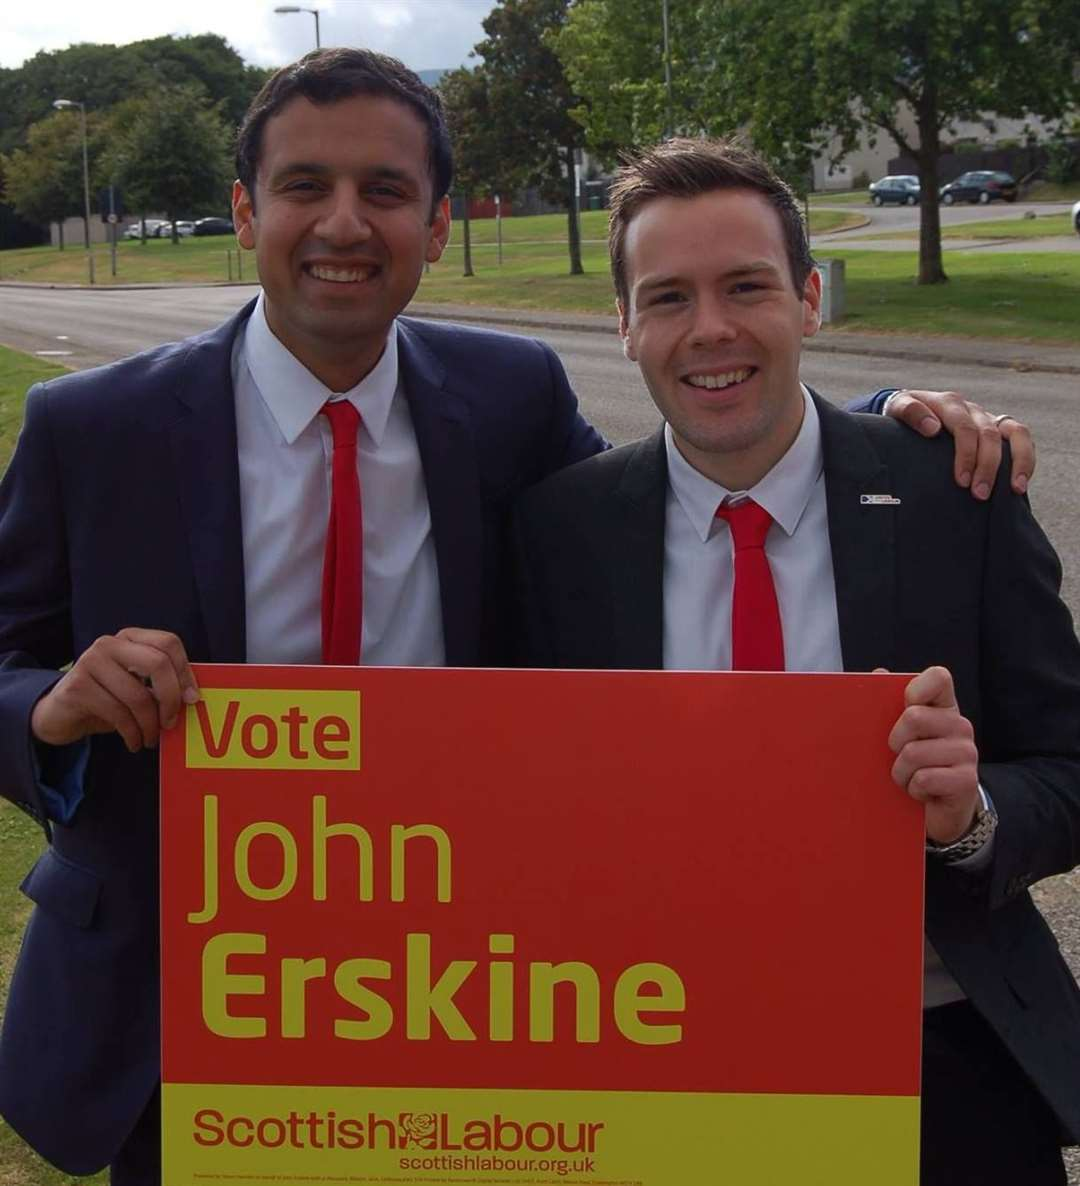 New Scottish Labour Party Leader Anas Sarwar and John Erskine on the election trail.